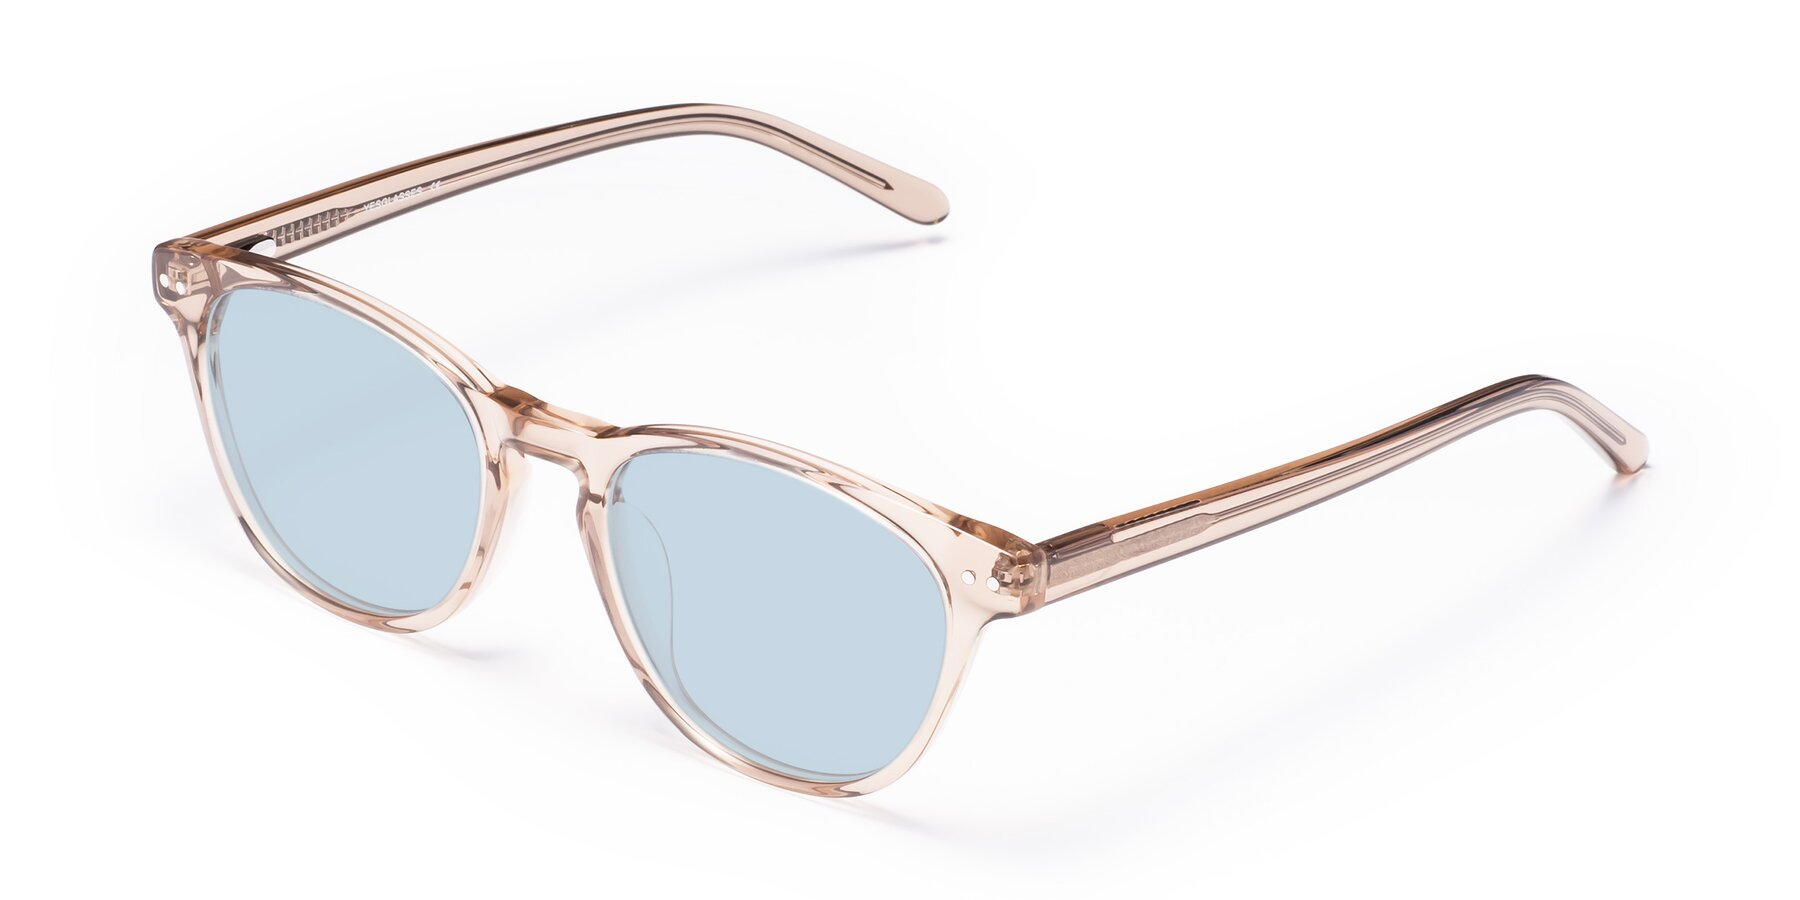 Angle of Blaze in light Brown with Light Blue Tinted Lenses